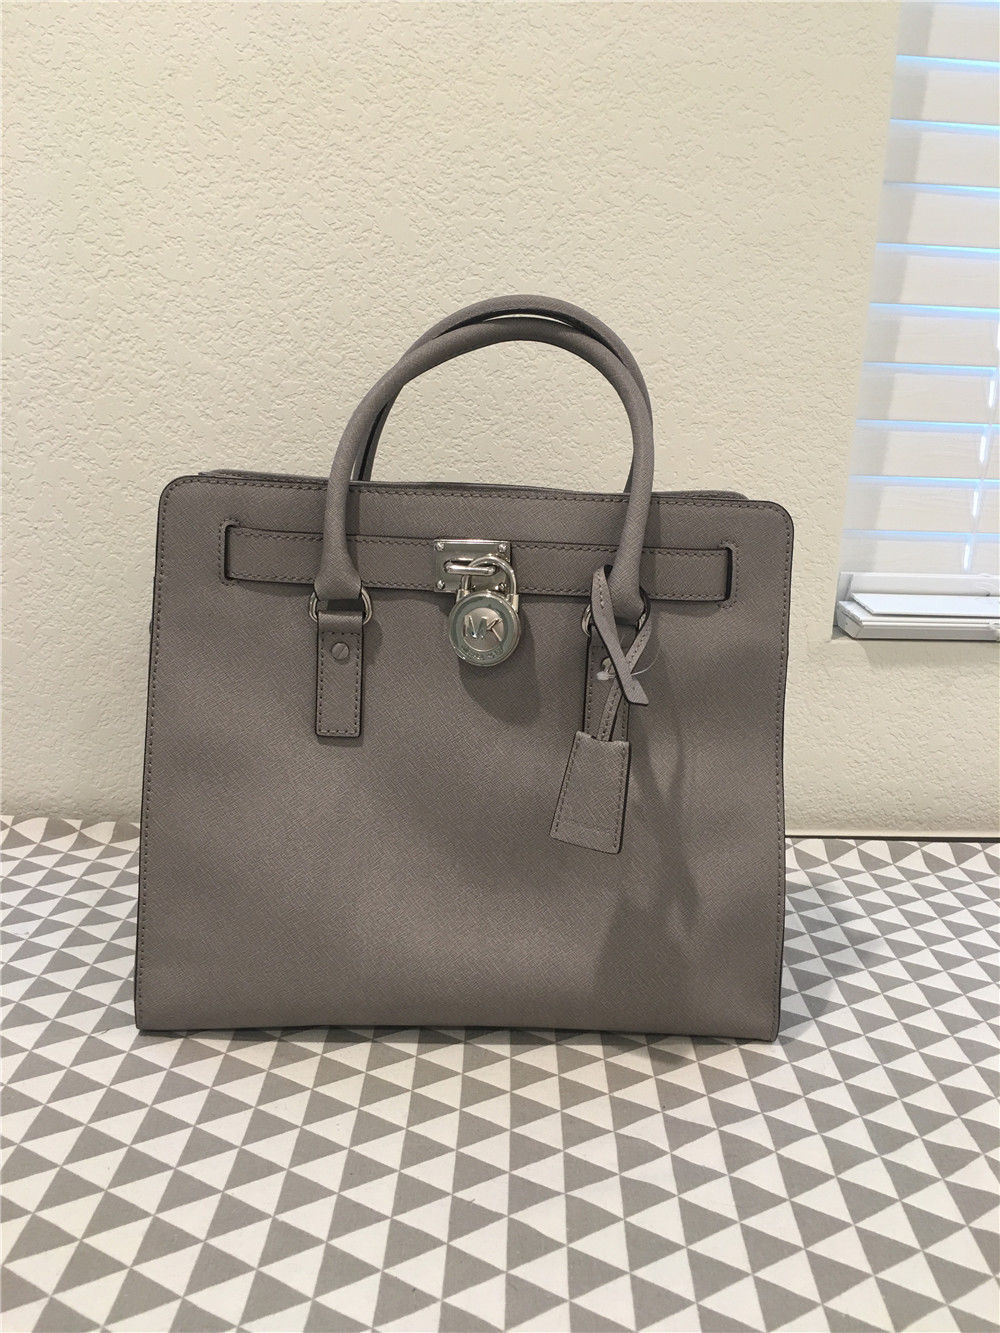 78c388af6c4c Michael Kors Large Dillon Saffiano Leather and 50 similar items. 57